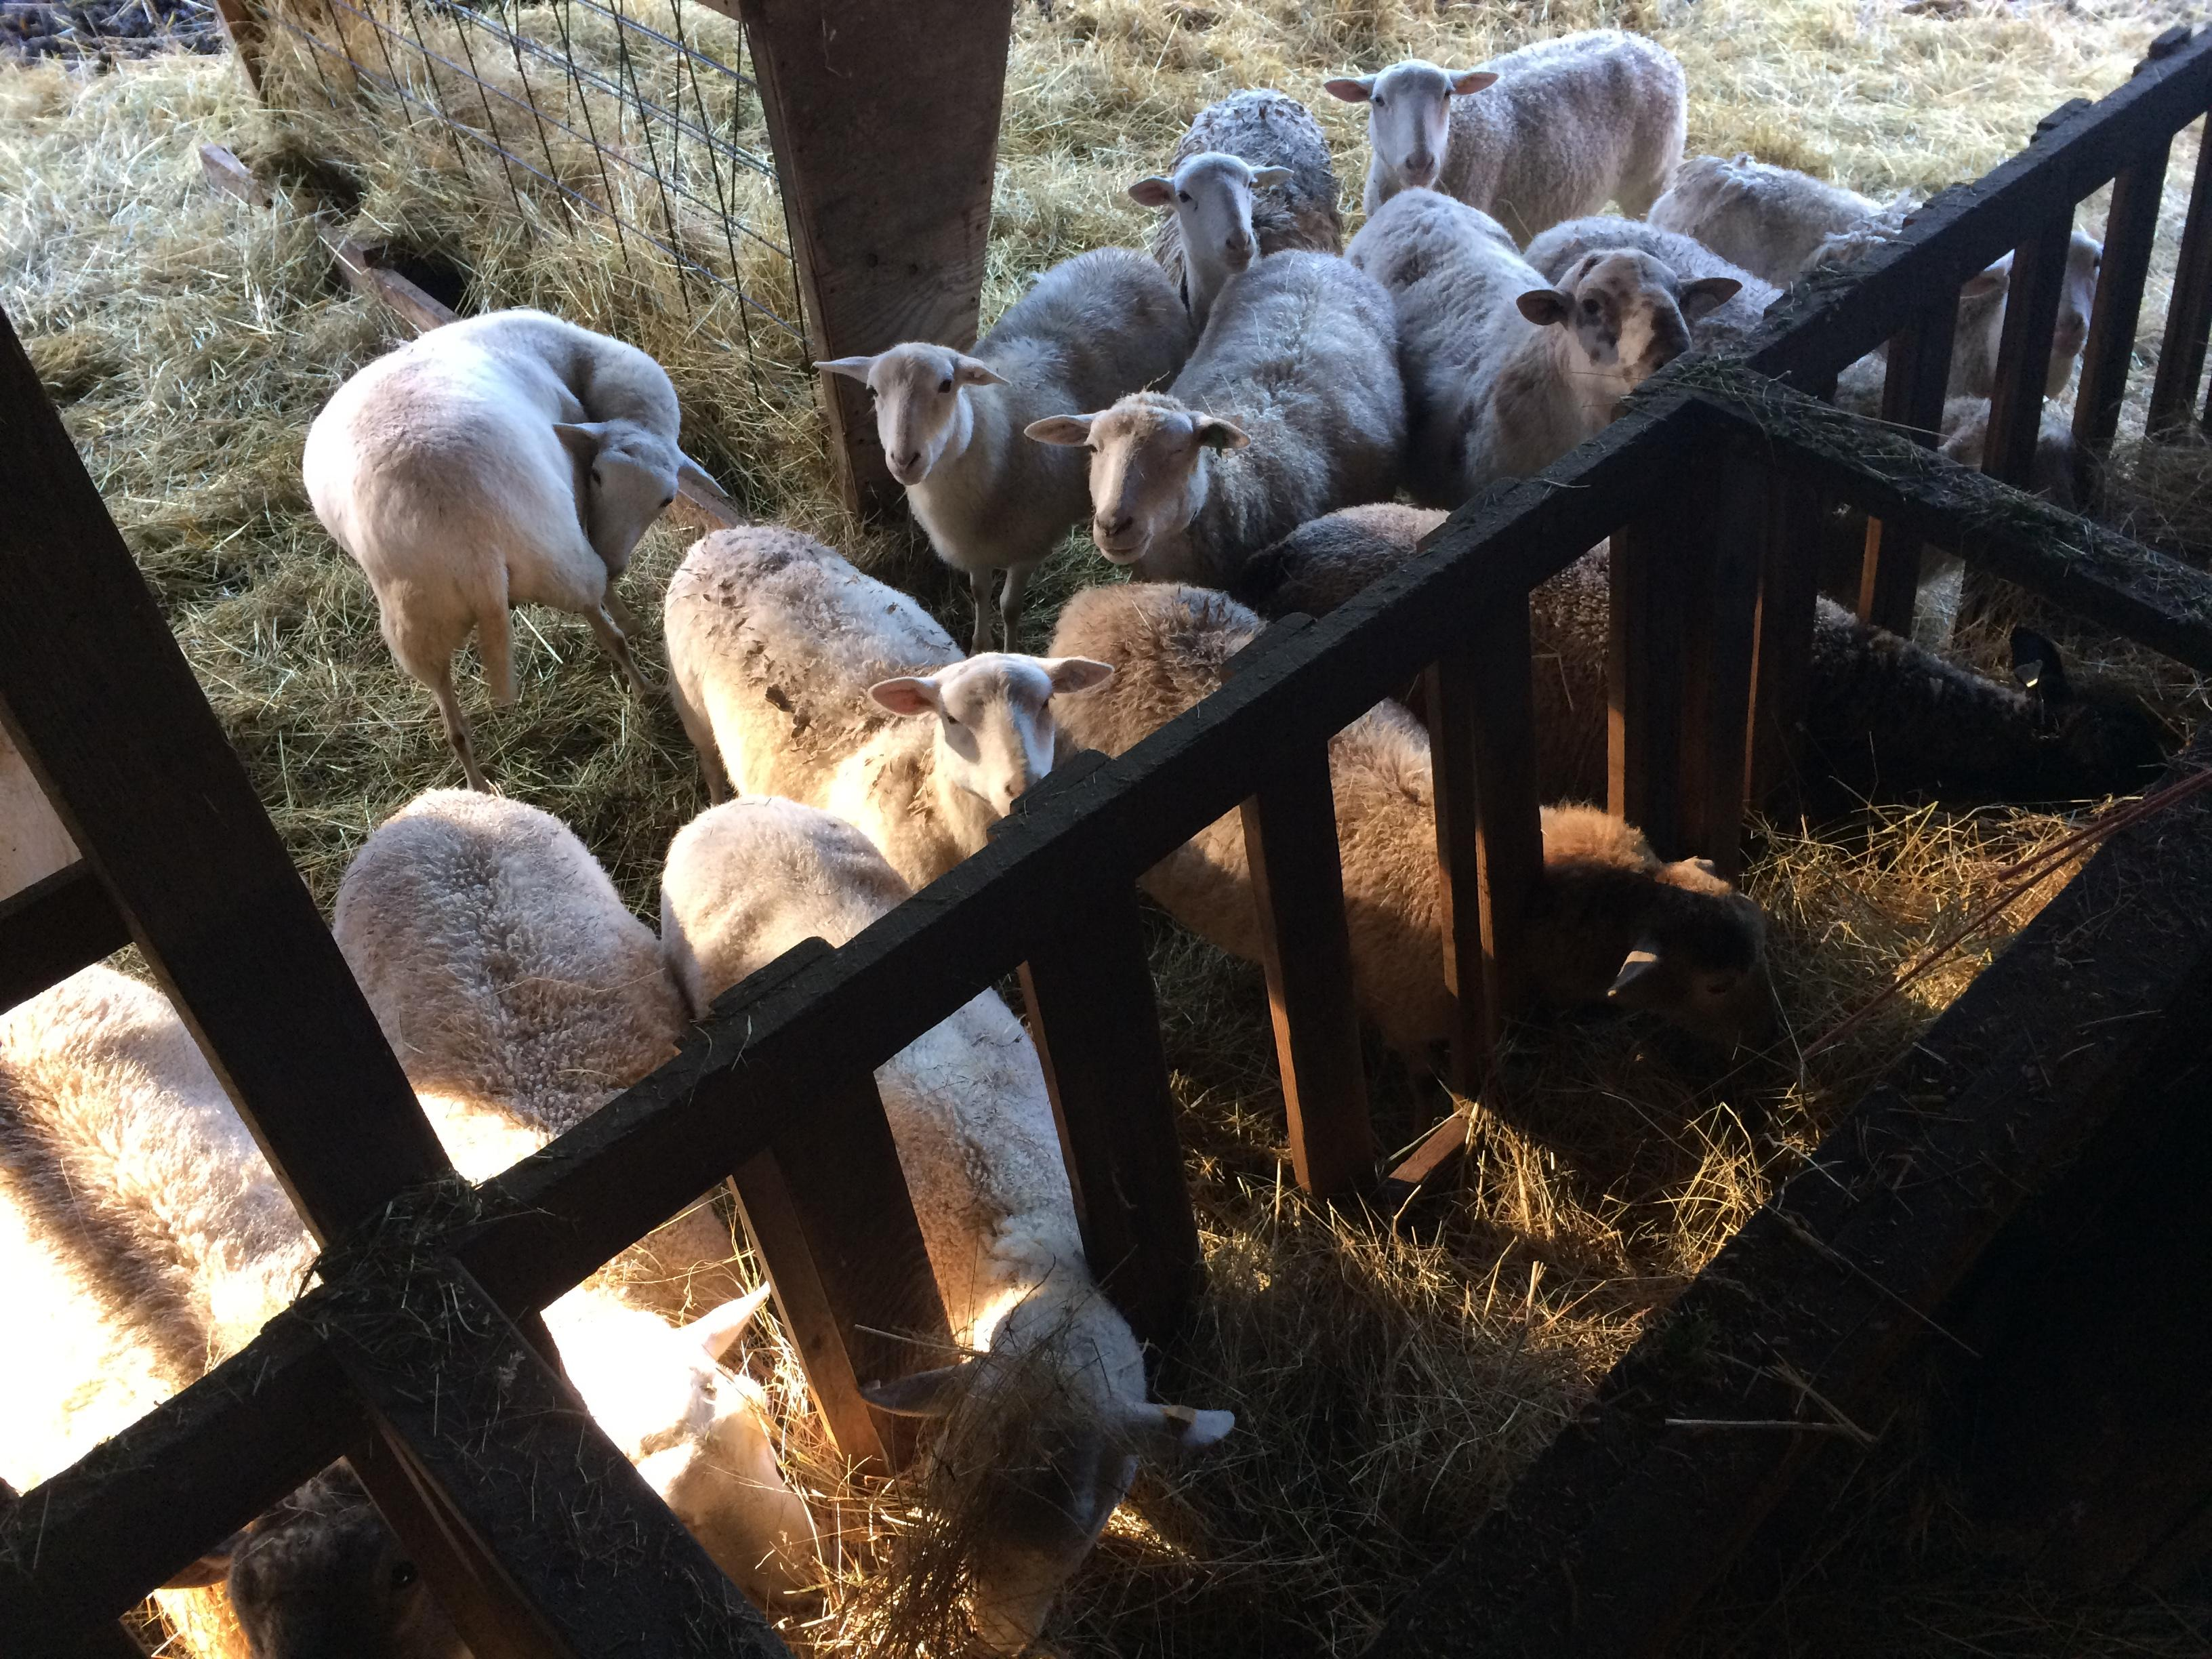 From city streets to rural lanes: The story of starting Leaping Lamb Farm from scratch